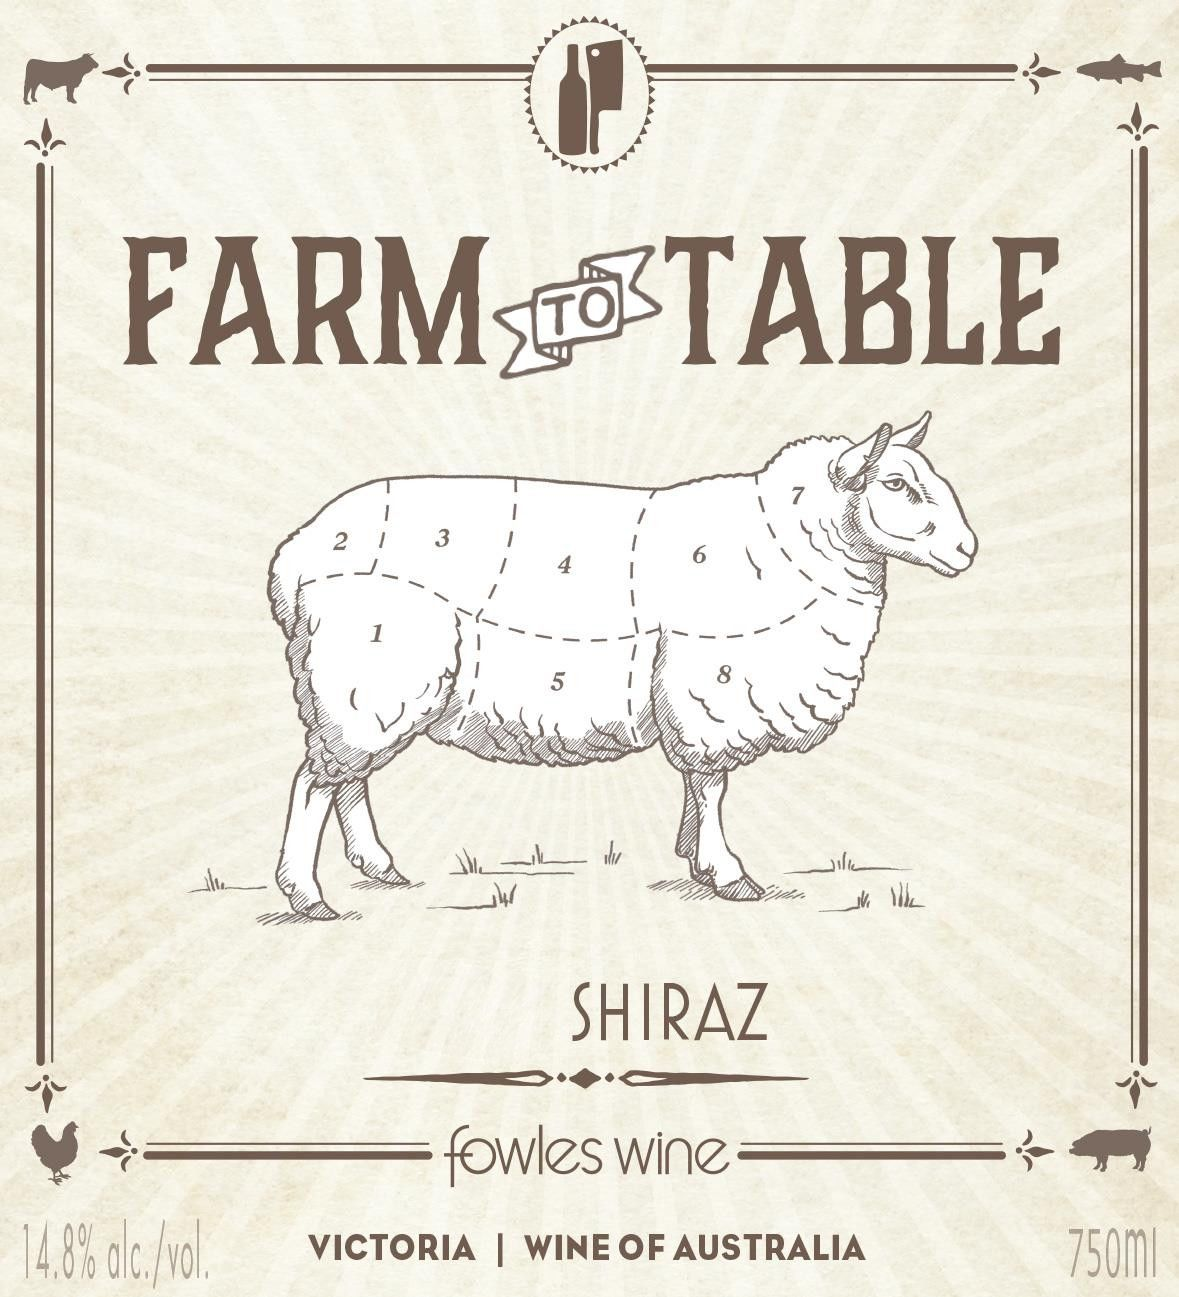 Fowles Wine Farm to Table Shiraz 2017  Front Label